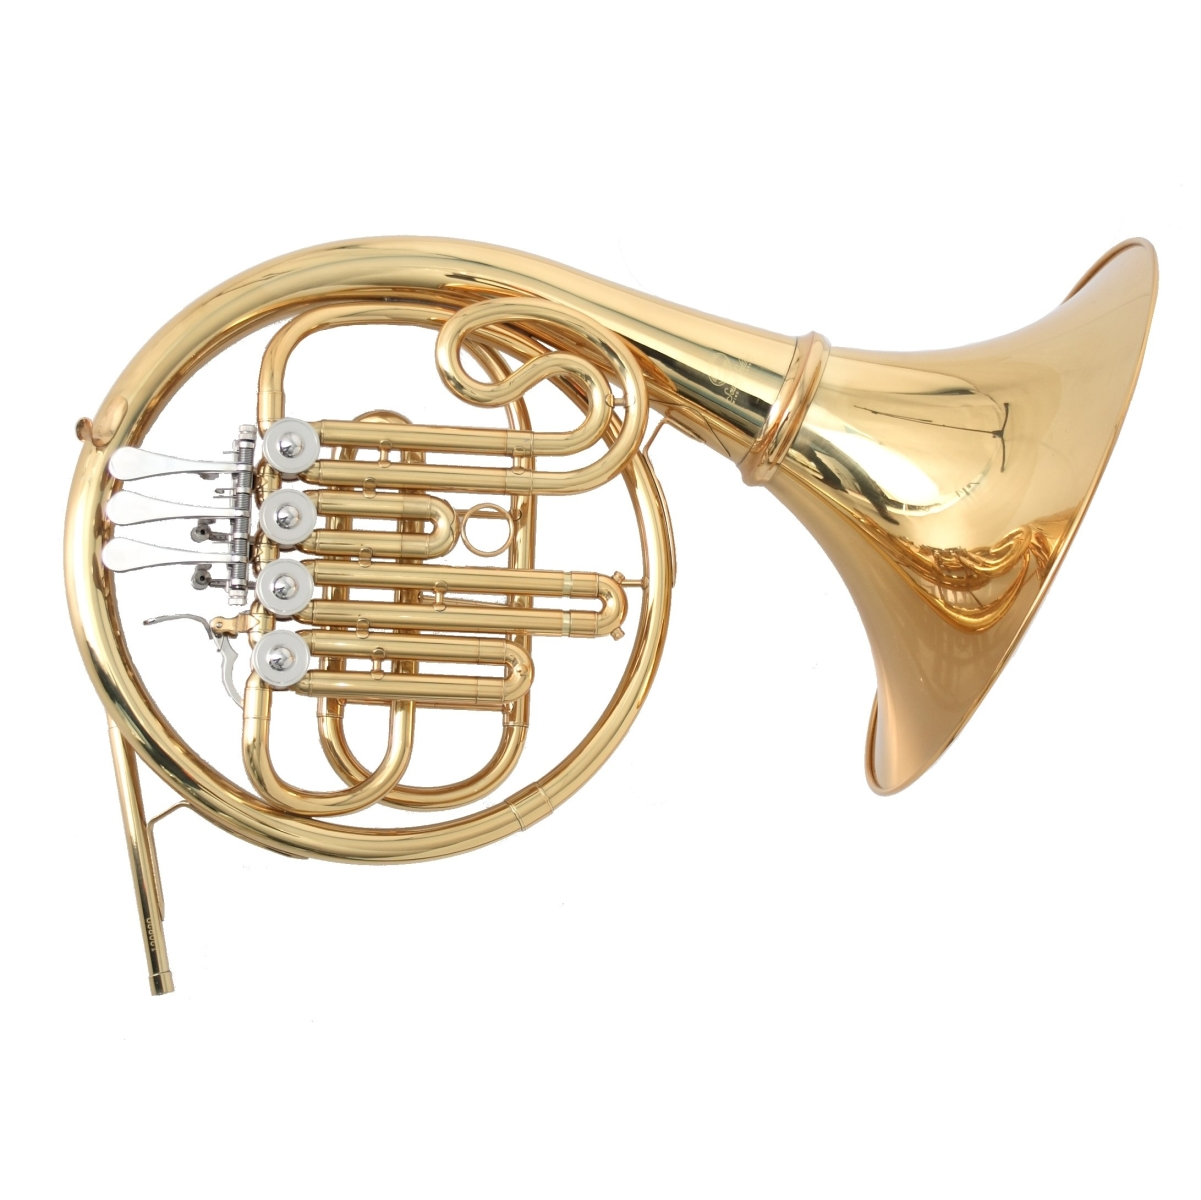 CORNO FRANCESE SOUNDSATION SCF-10G in Sib GOLD